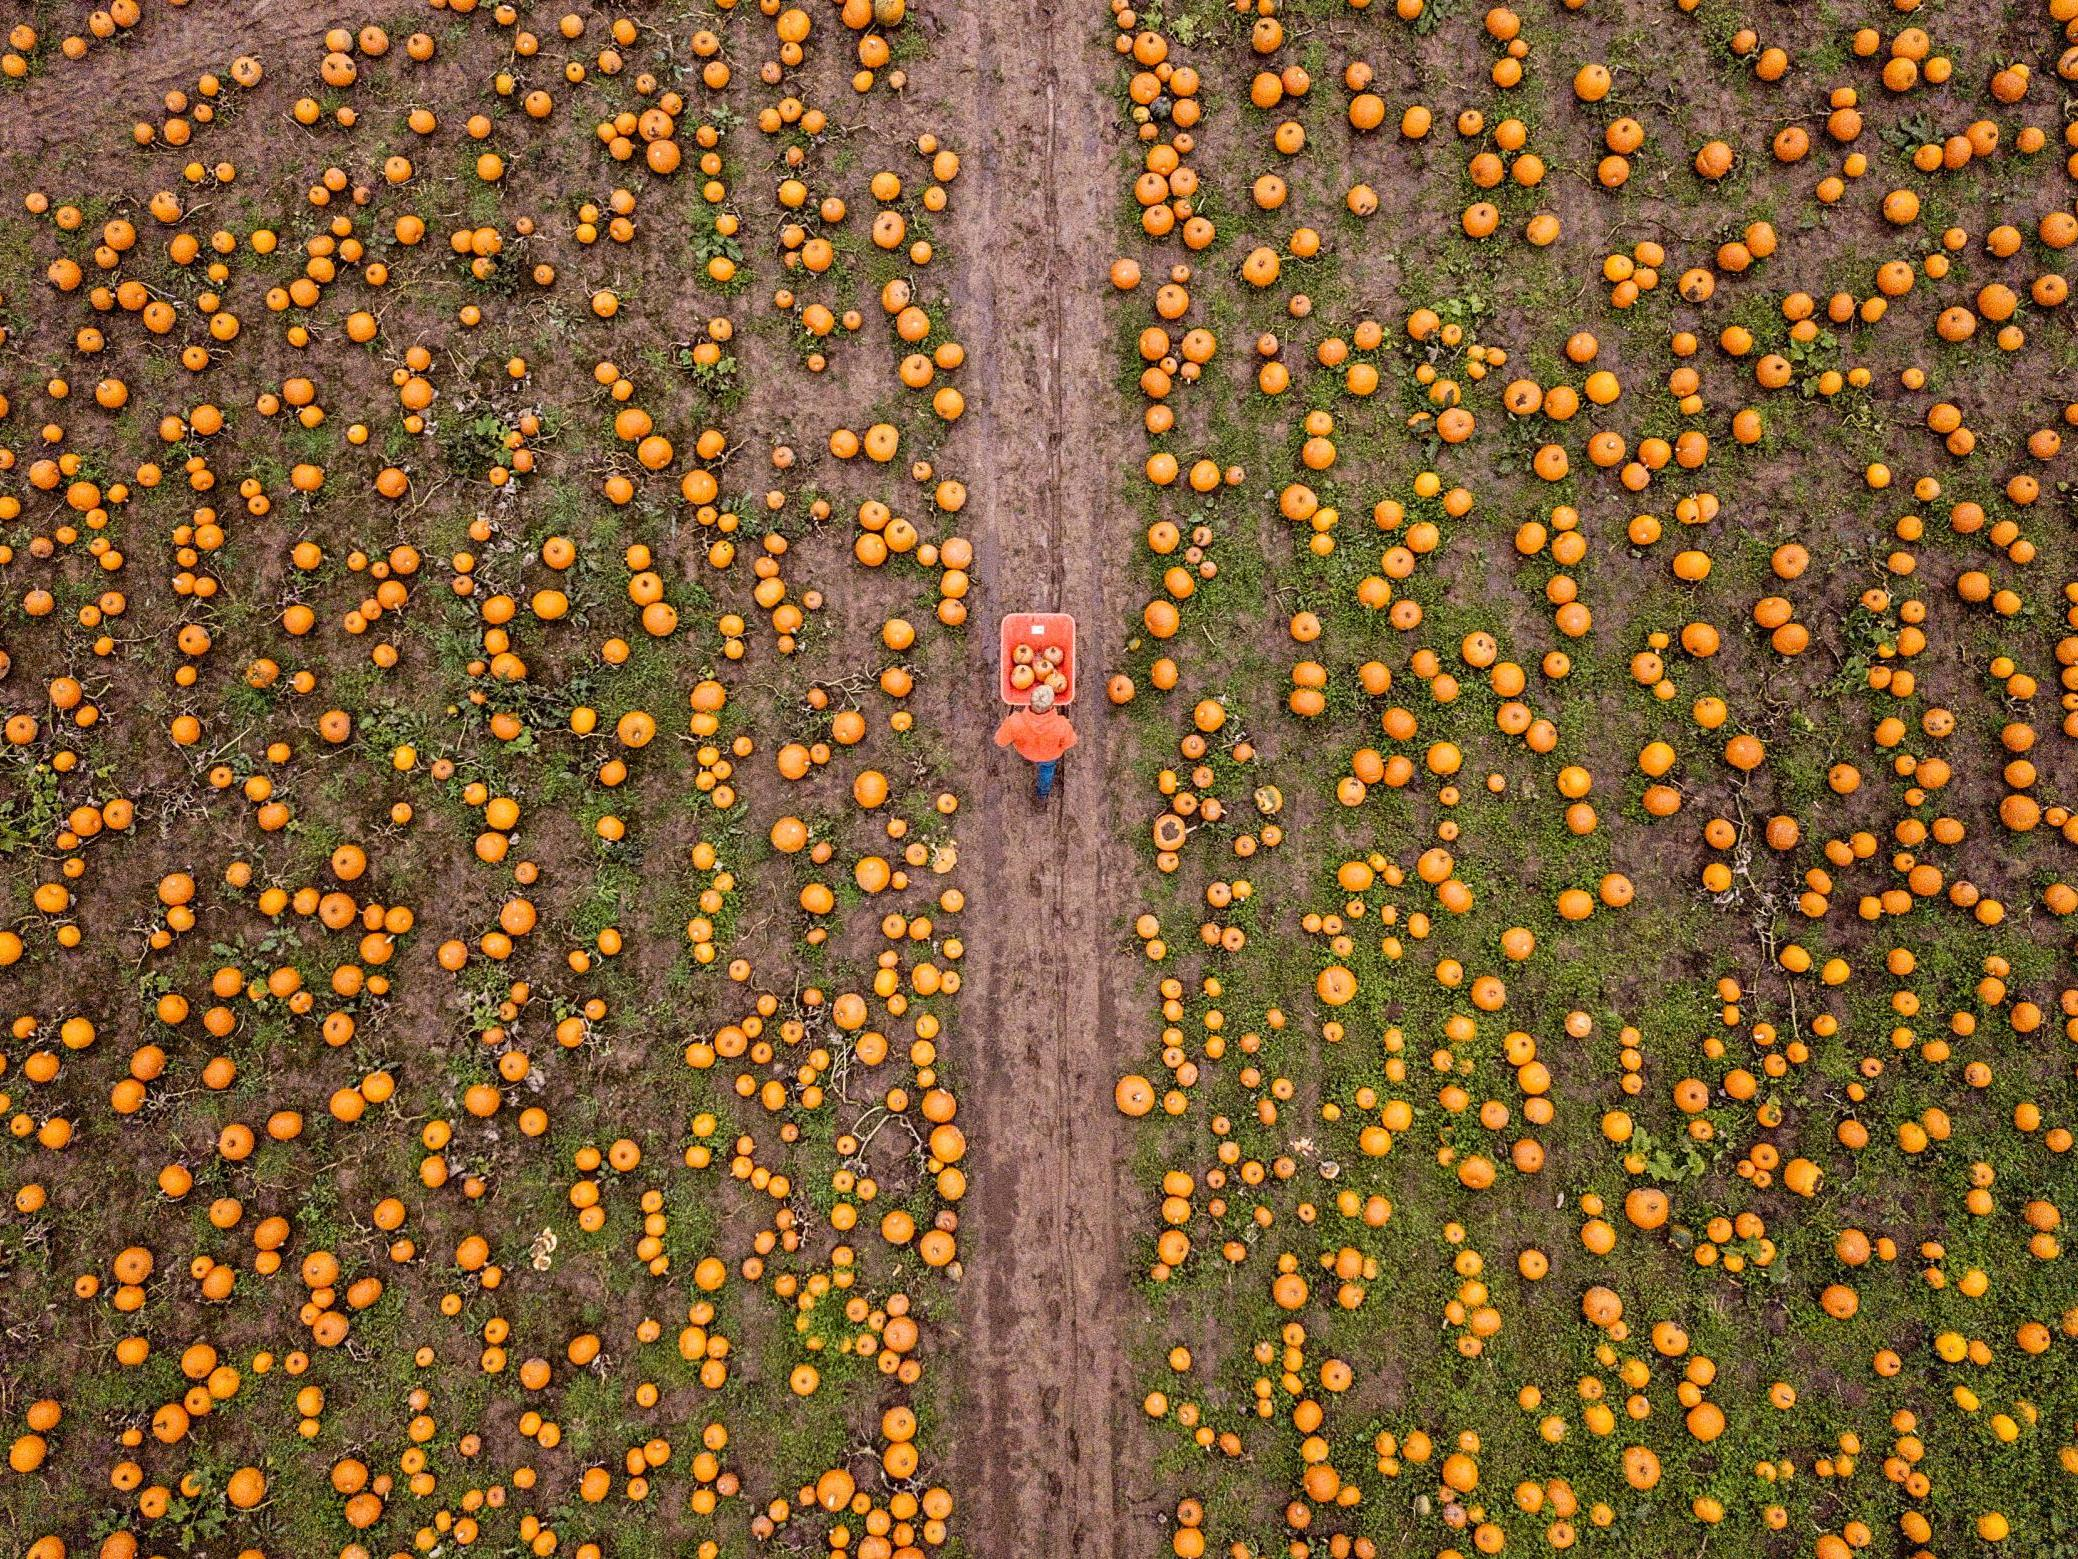 Incredible drone images show UK's largest pumpkin farm that sells 25,000 every autumn